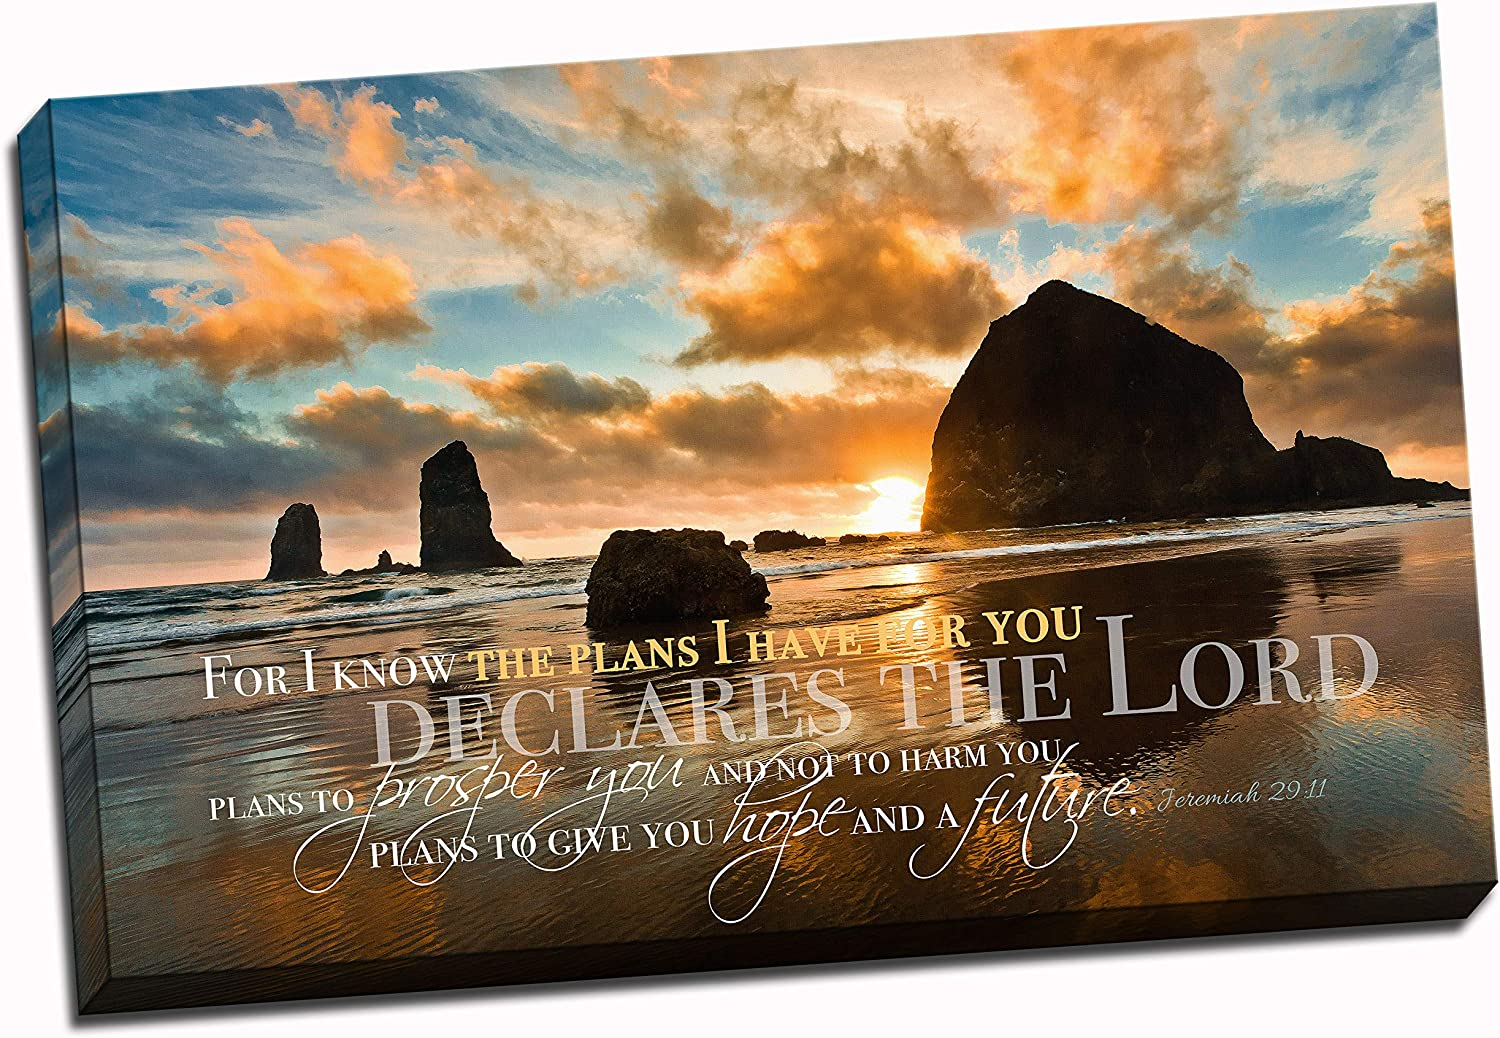 Christian Wall Art Canvas - For I Know The Plans I Have For You, Jeremiah 29:11, Faith Art, Bible Verse Wall Decor, Scripture Canvas, Ocean Scene (16x24)